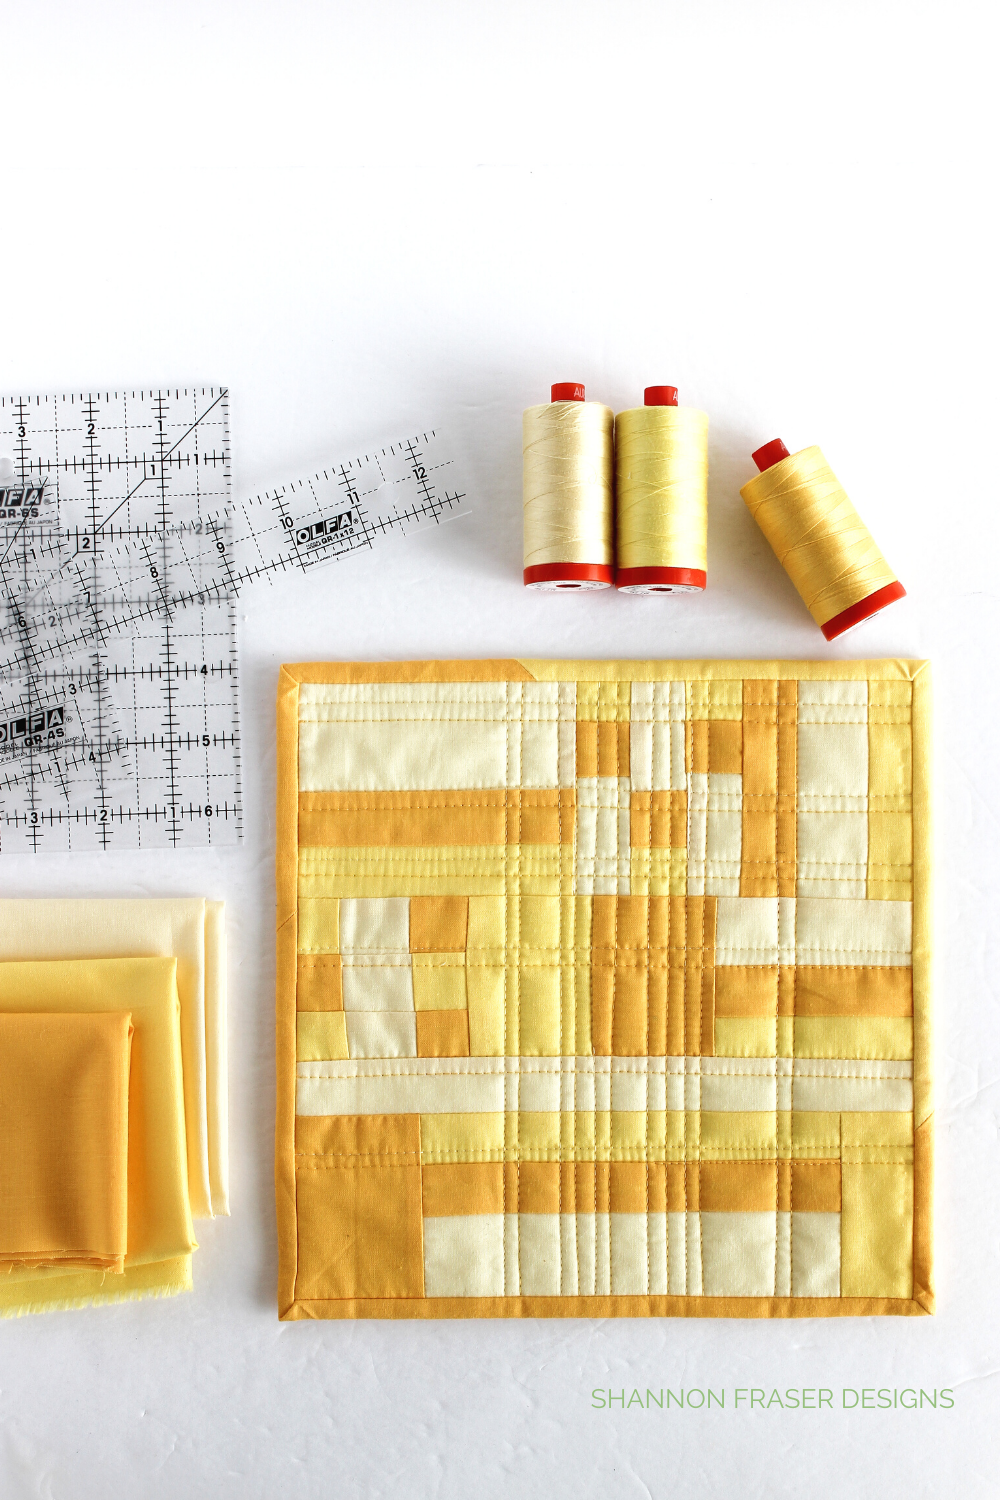 Sunshine on a Saturday morning mini quilt surrounded by the tools and materials used to create her: Olfa frosted rulers, Aurifil Thread 50wt yellow spools + Cotton Couture yellow Fat Quarter solids | Shannon Fraser Designs #artquilts